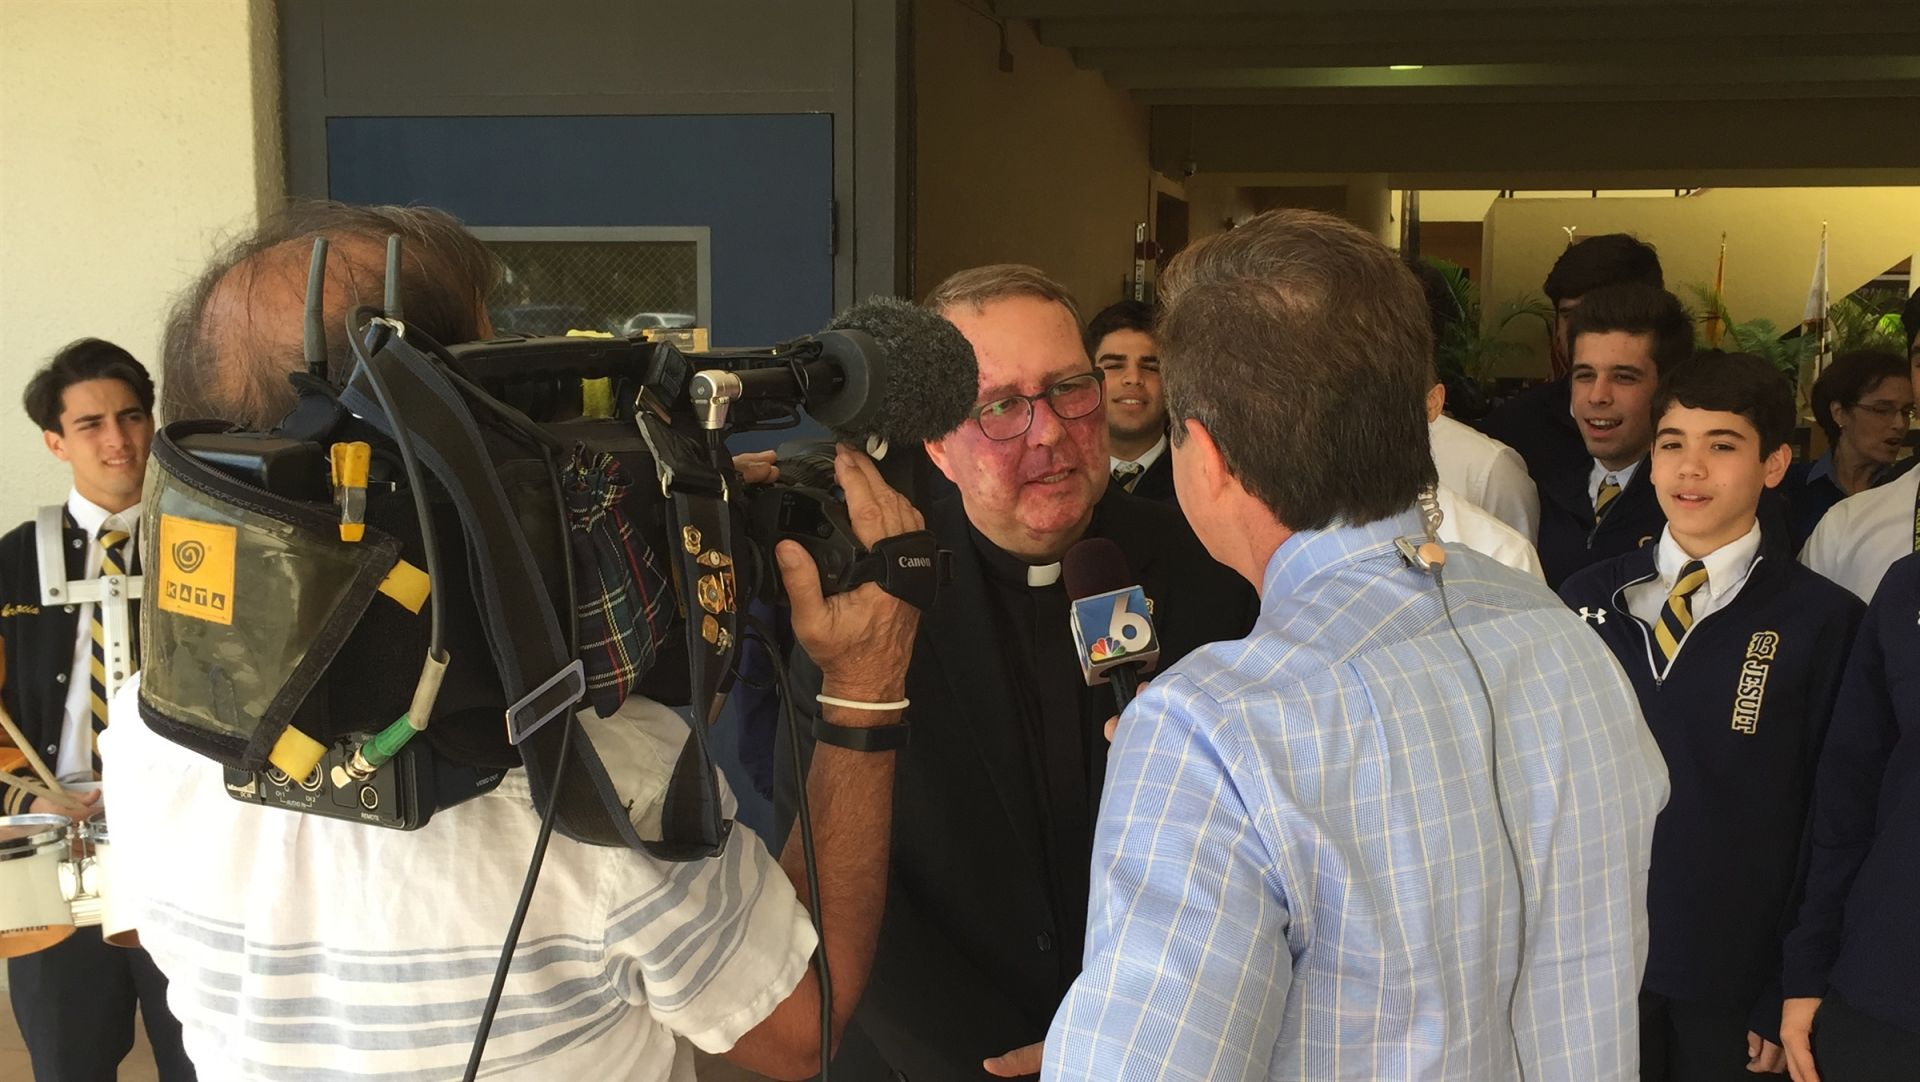 Fr. Willie was interviewed by reporter Ari Odzer, NBC 6 for the education segment